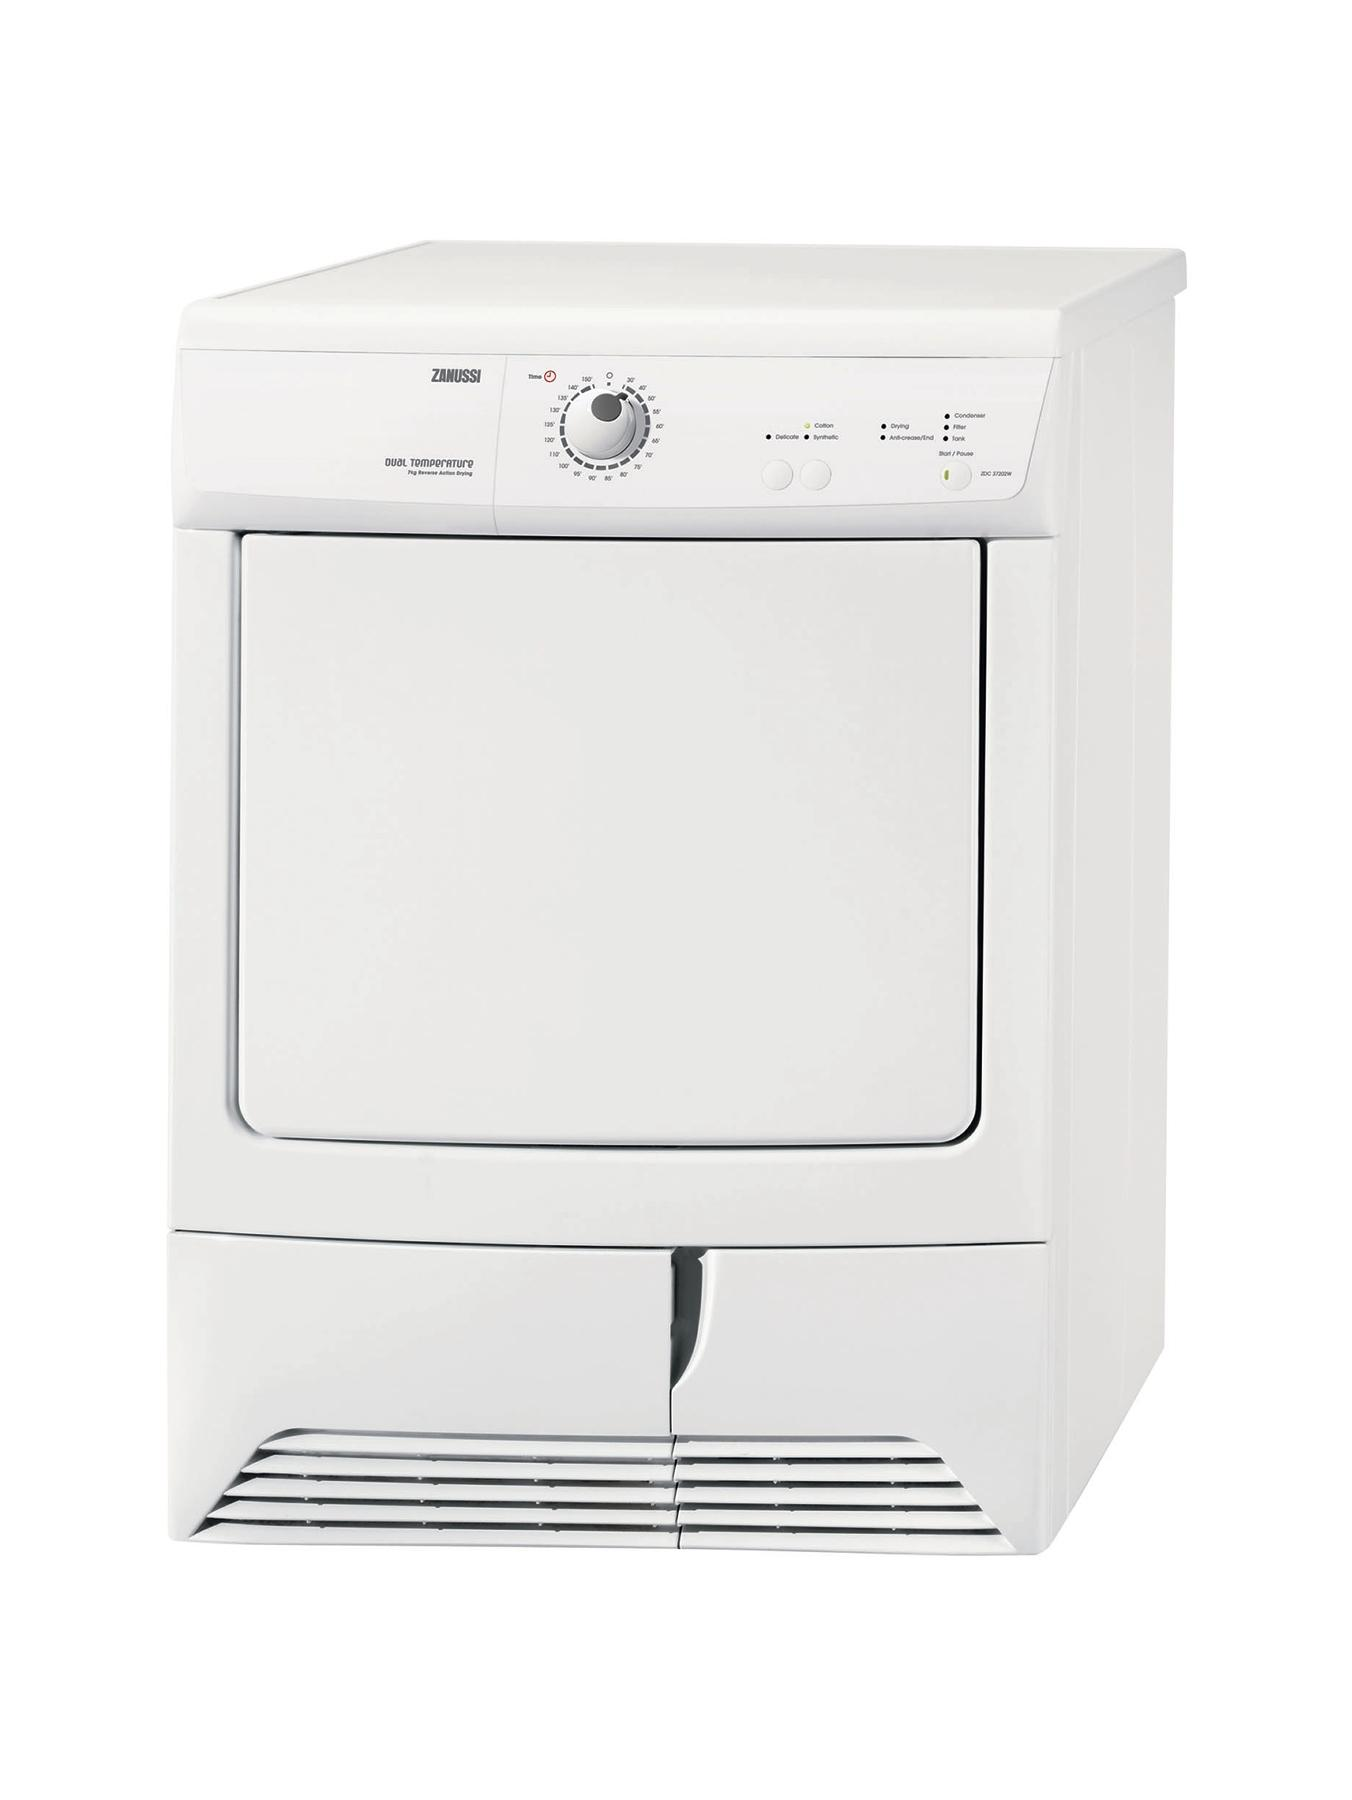 ZDC37202W 7Kg Condenser Dryer - White